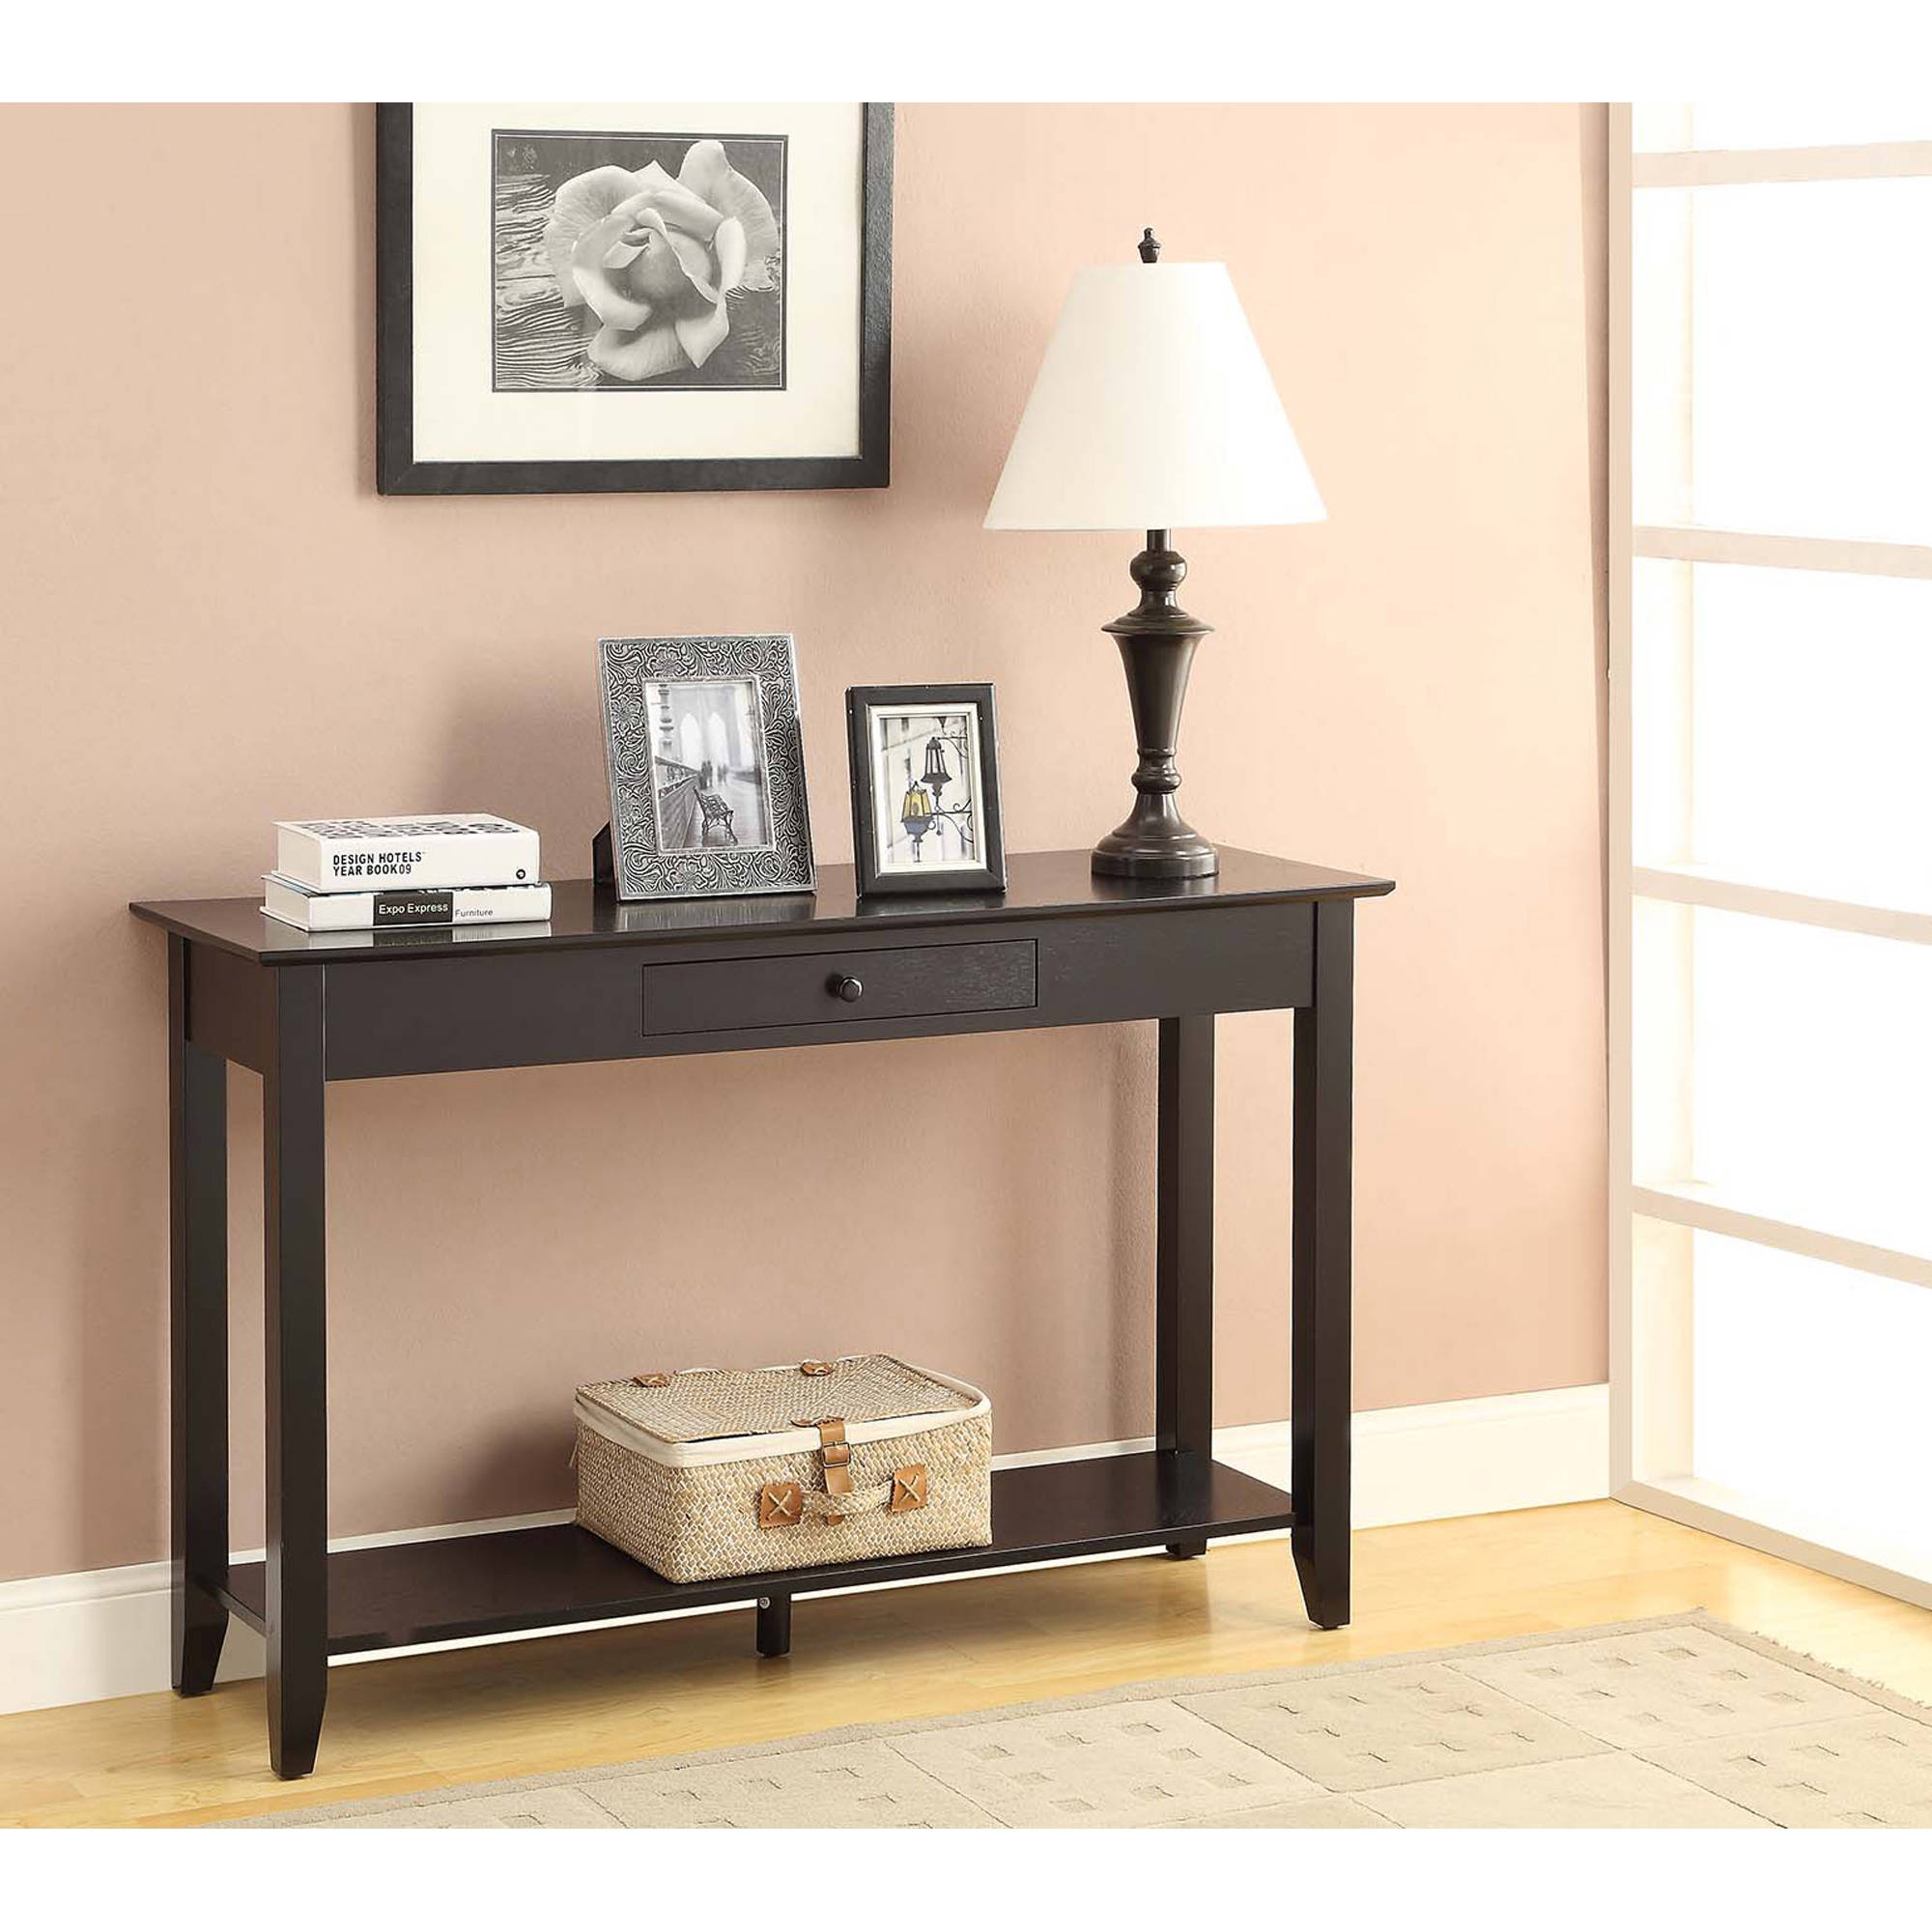 Convenience Concepts American Heritage Console Table, Multiple Finishes